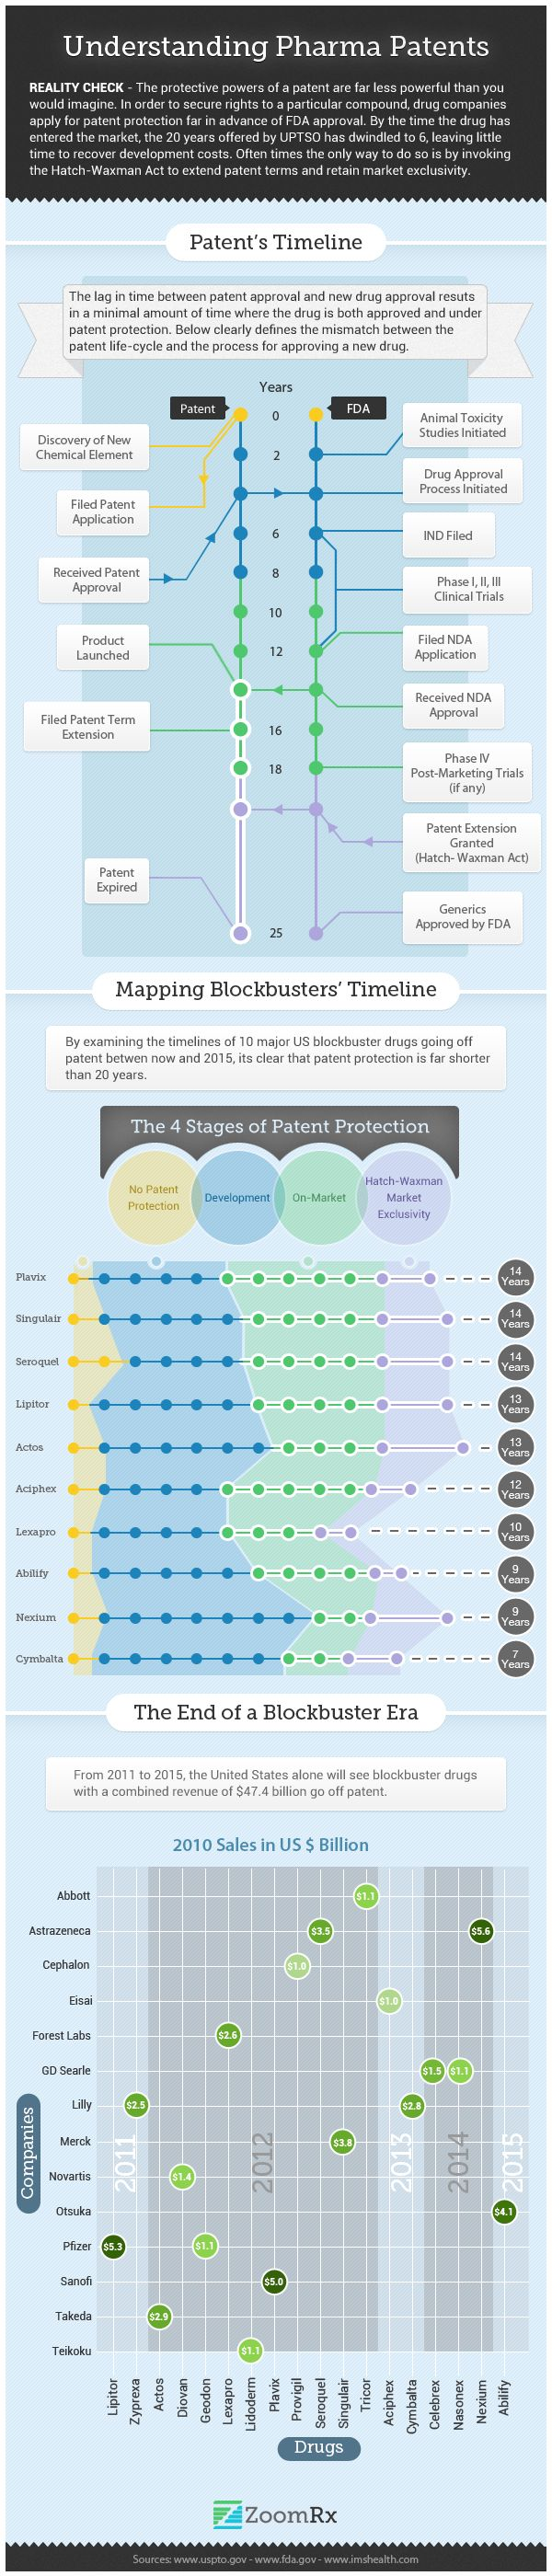 The Truth About Patent Protection